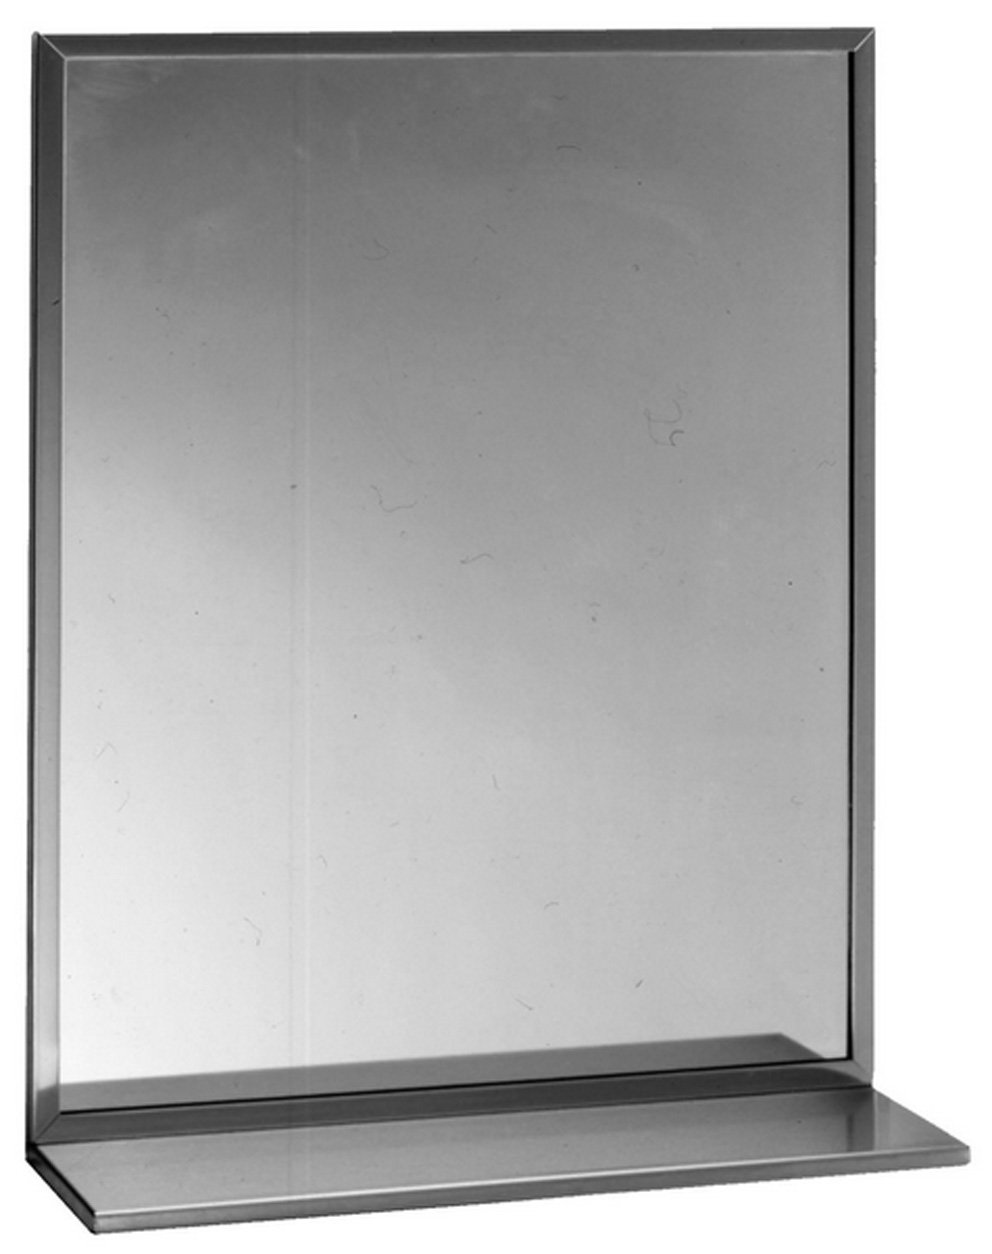 Amazon Bobrick 166 Series 430 Stainless Steel Channel Frame Glass Mirror With Shelf Bright Finish 18 Width X 24 Height Industrial Scientific